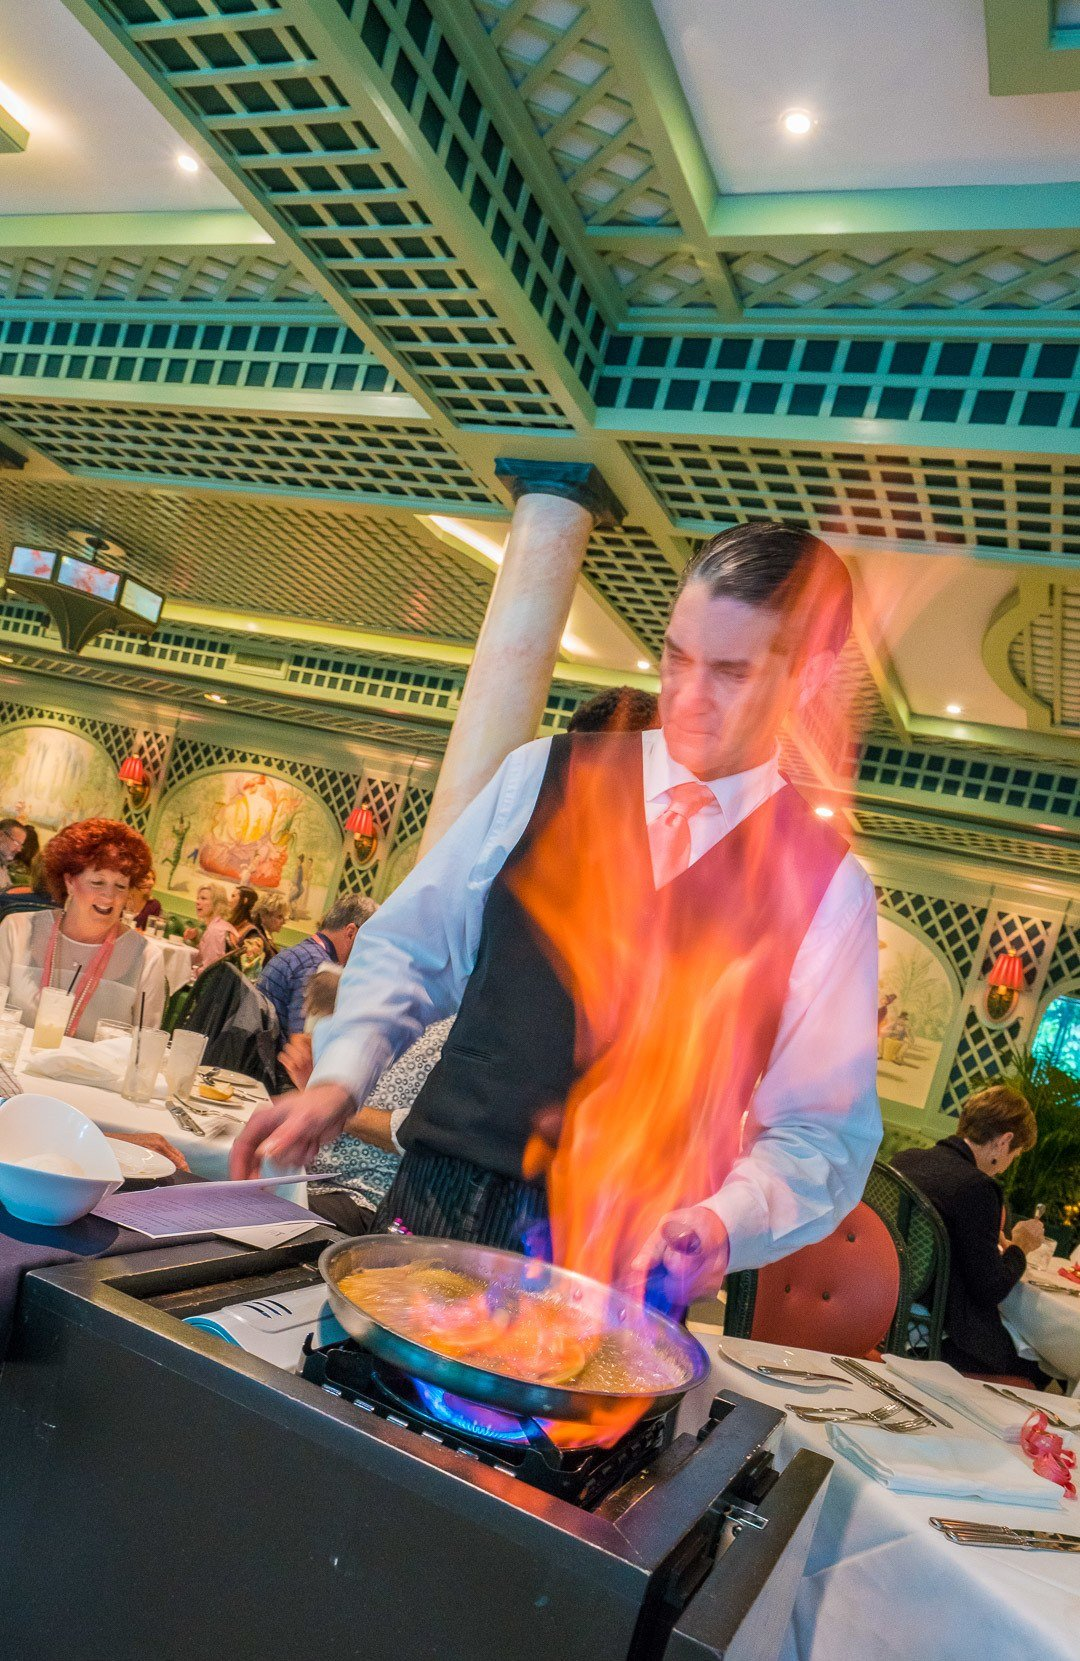 Bananas Foster was created at Brennan's restaurant in New Orleans.